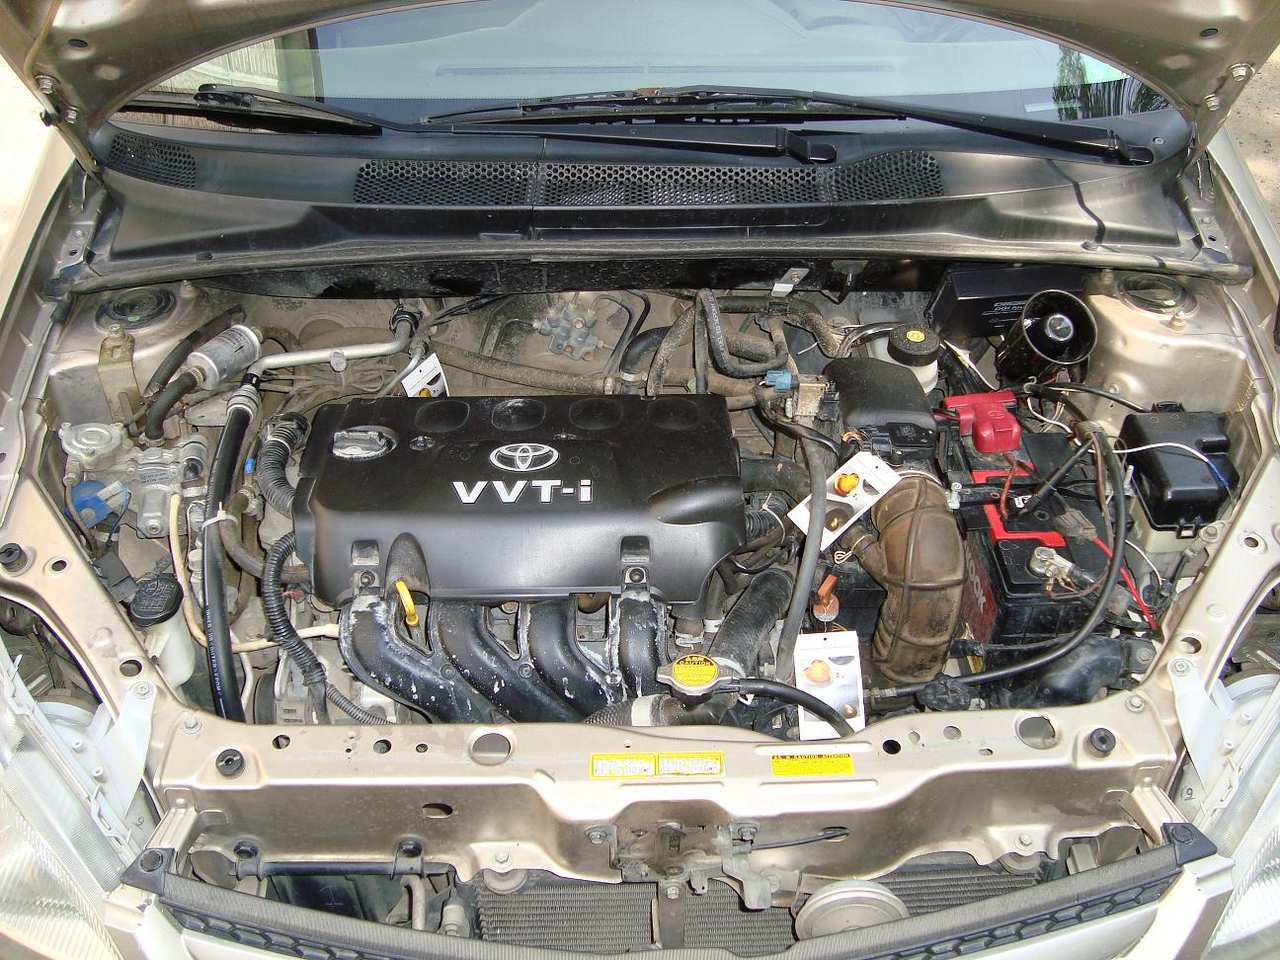 Mercury 9 9 Bigfoot Wiring Diagrams besides 2000 Pontiac Grand Am Exhaust System Diagram besides 4 Cylinder Engine Heads additionally 1997 Ford Ranger Engine 4 Cylinder furthermore 5vz Engine Specs. on toyota ta a 4 cylinder engine diagram